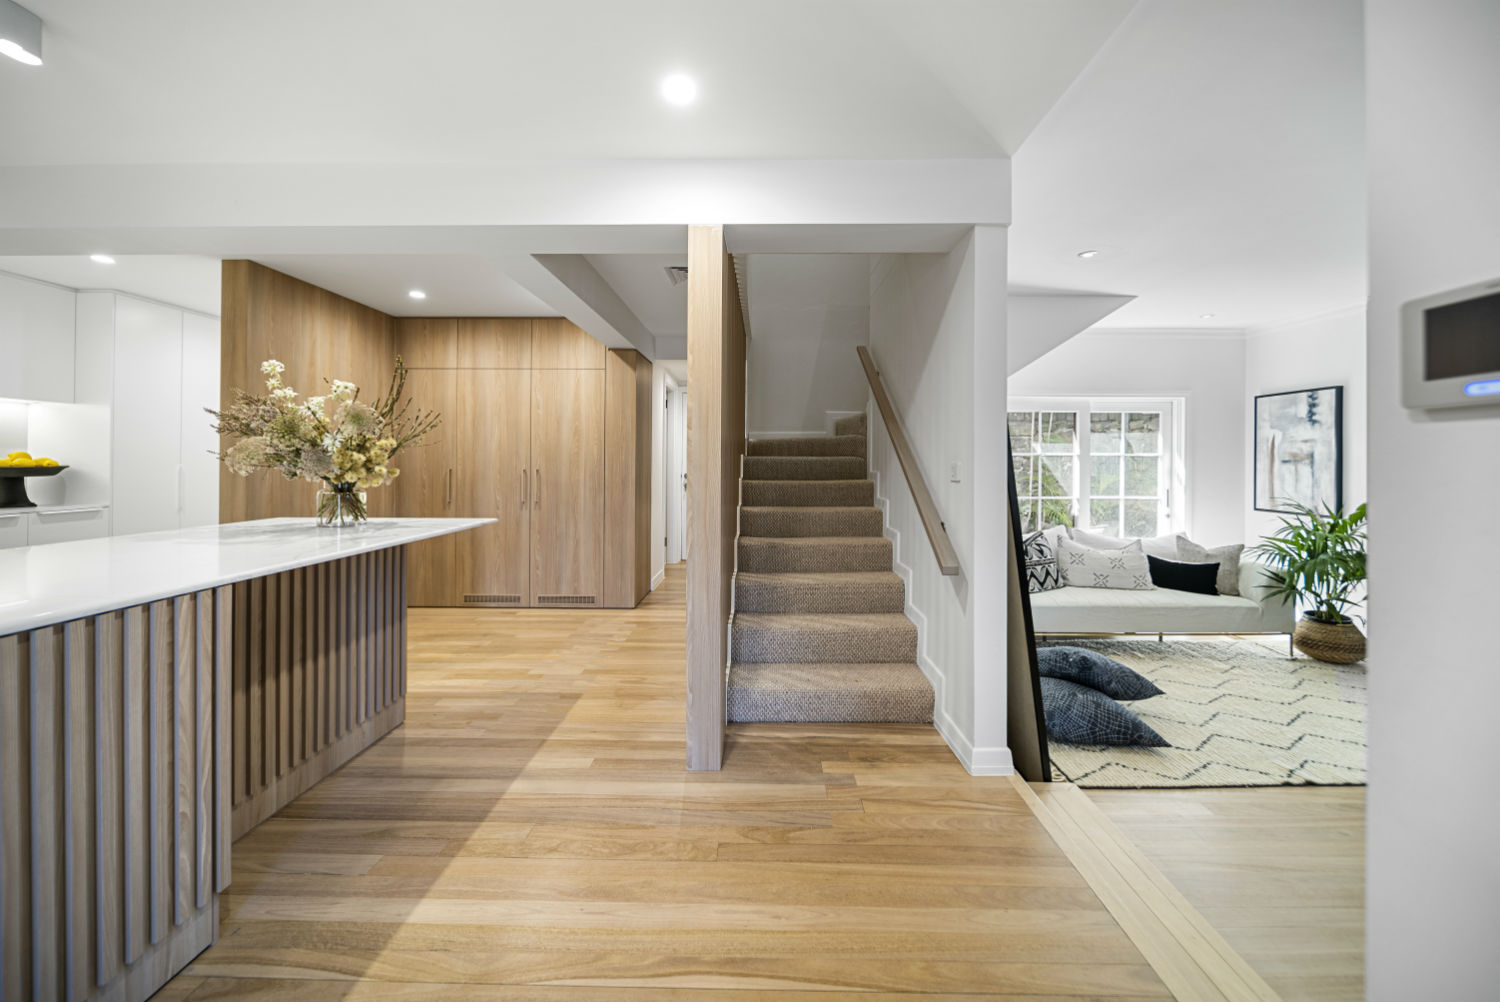 Renovation - Stairs